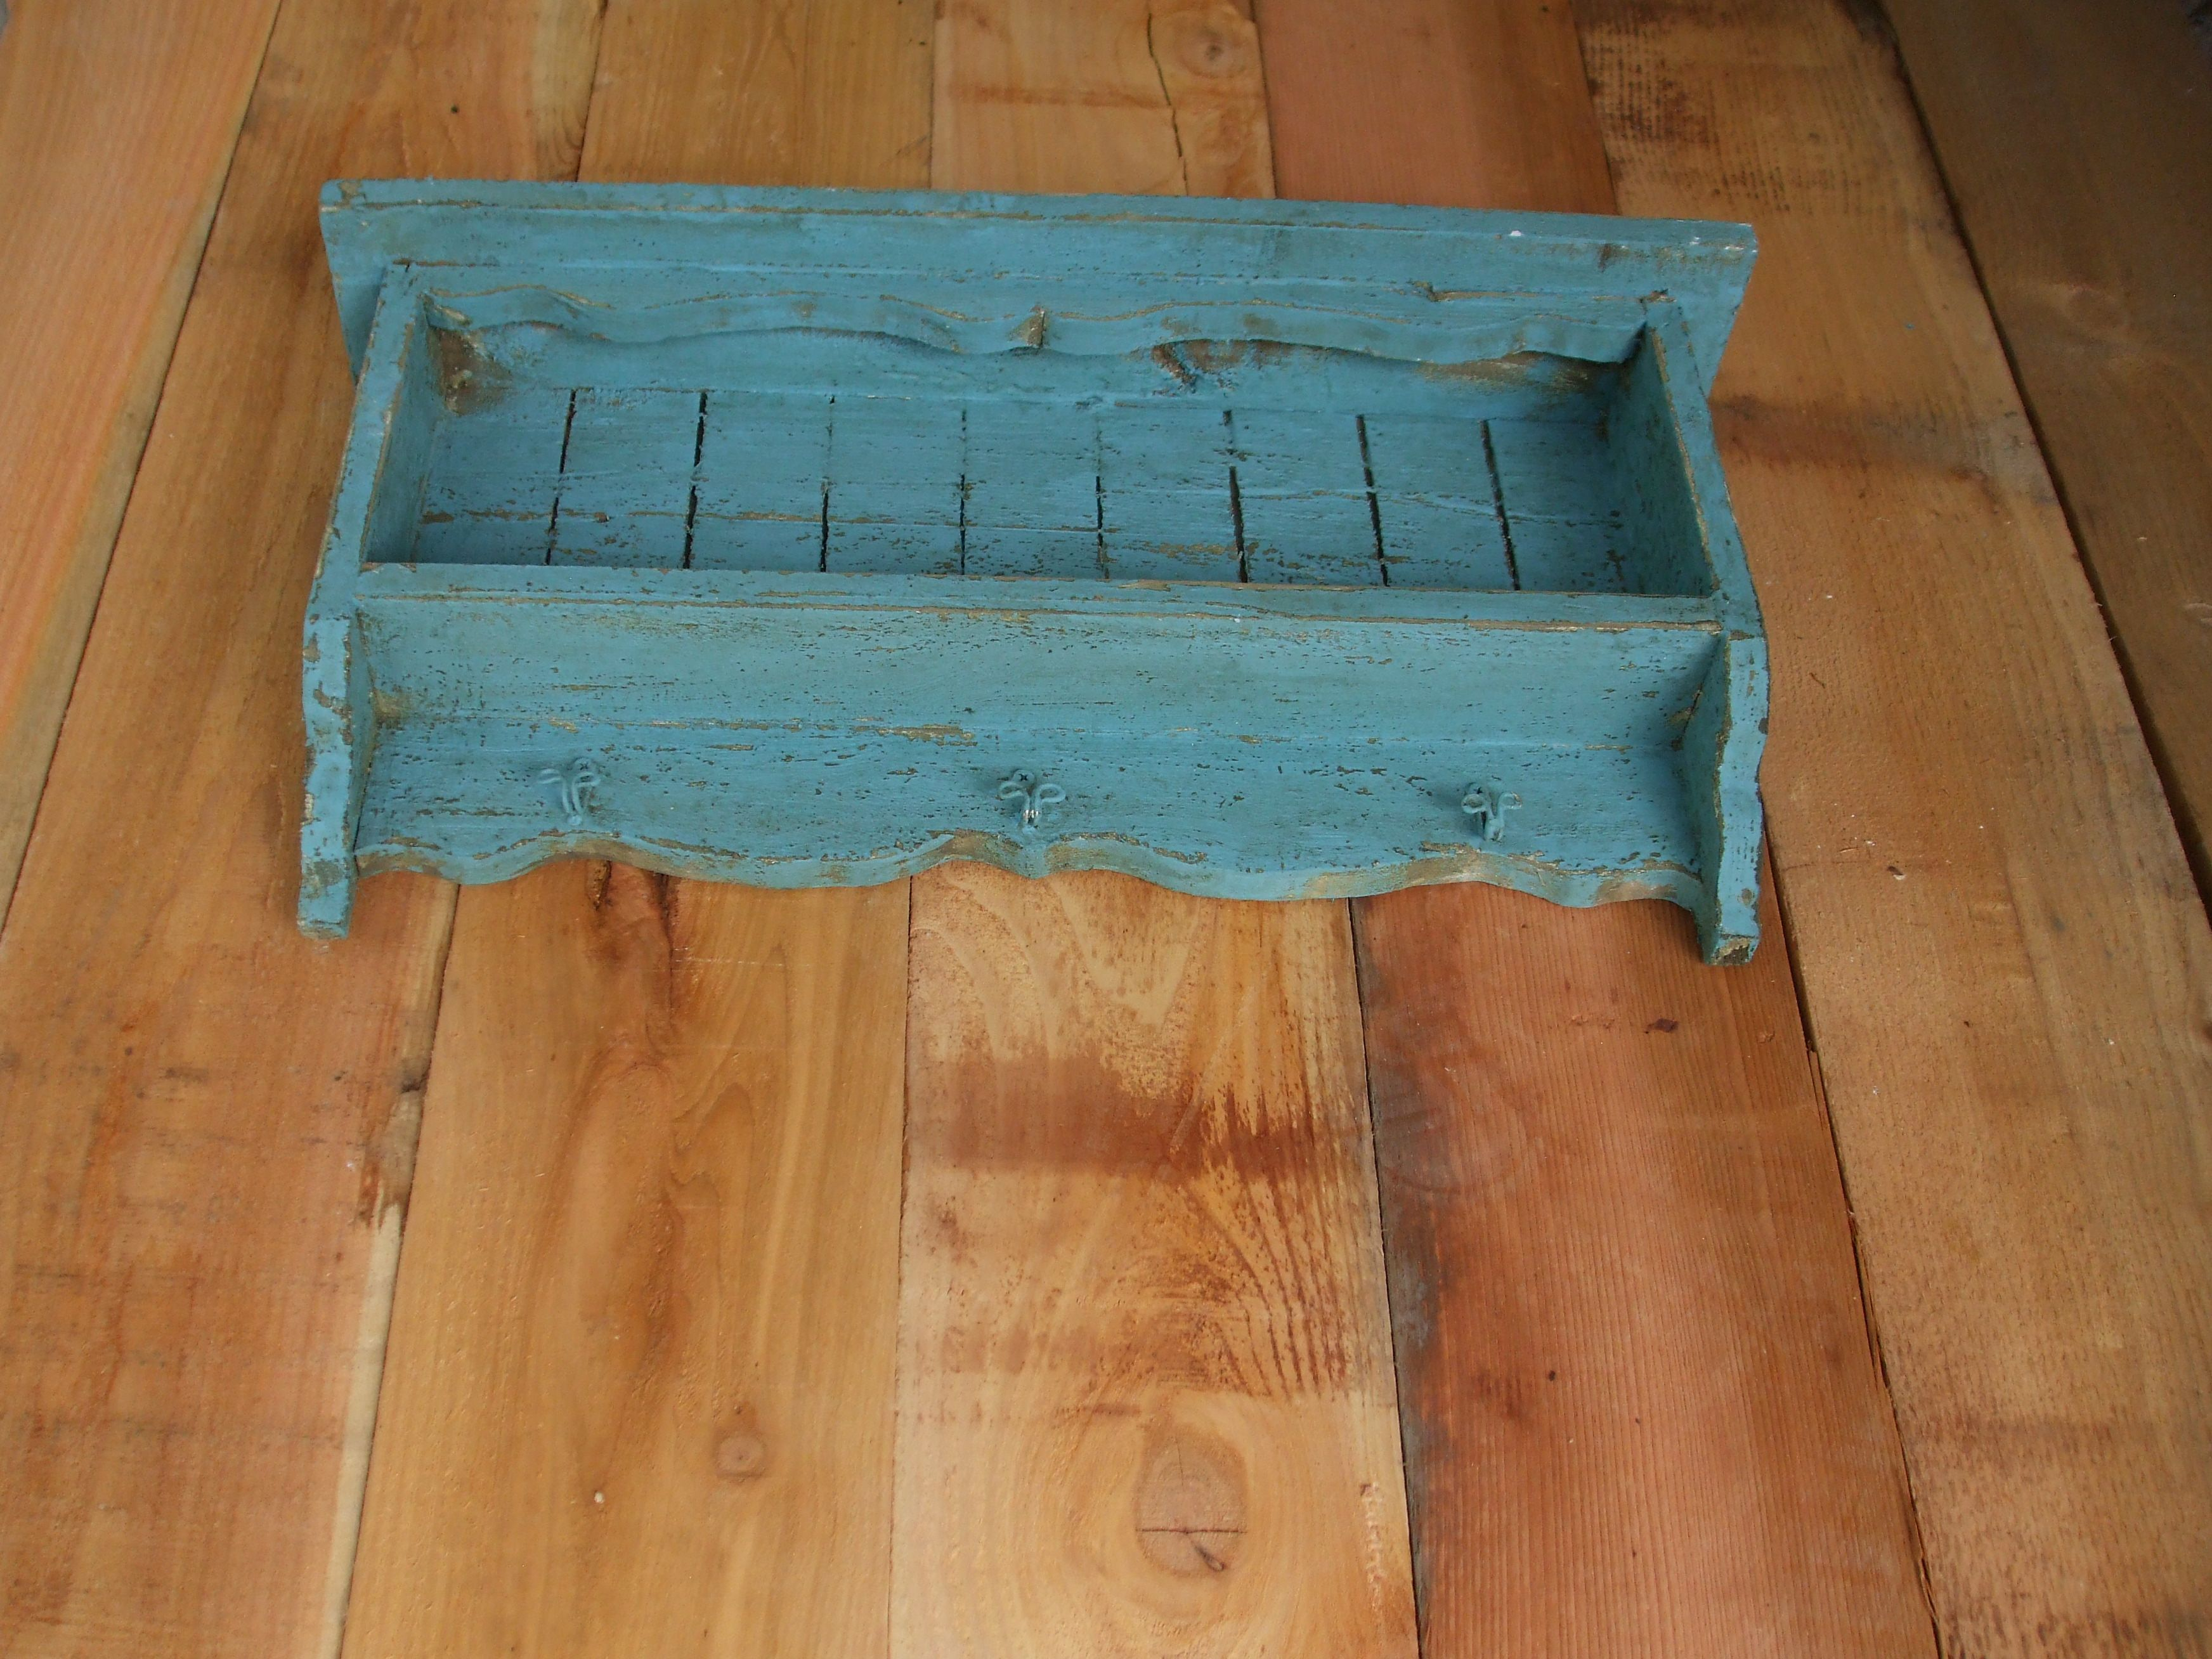 Buy a Hand Crafted Turquoise Blue Wall Shelf, Distressed, Handmade ...